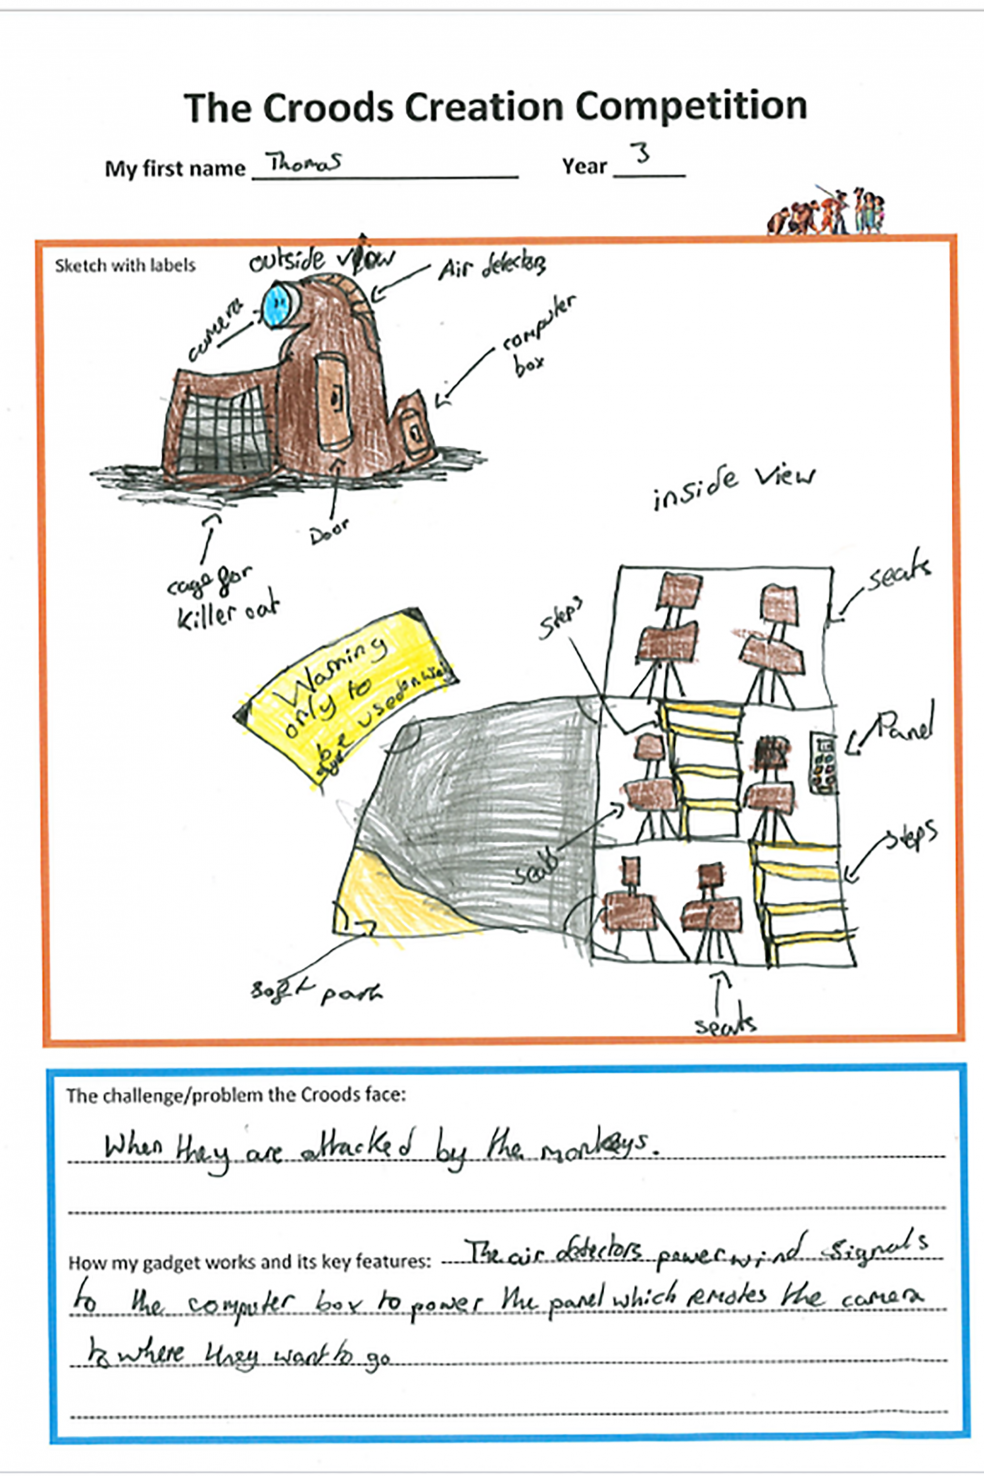 Croods Creations Competition Winner - Thomas